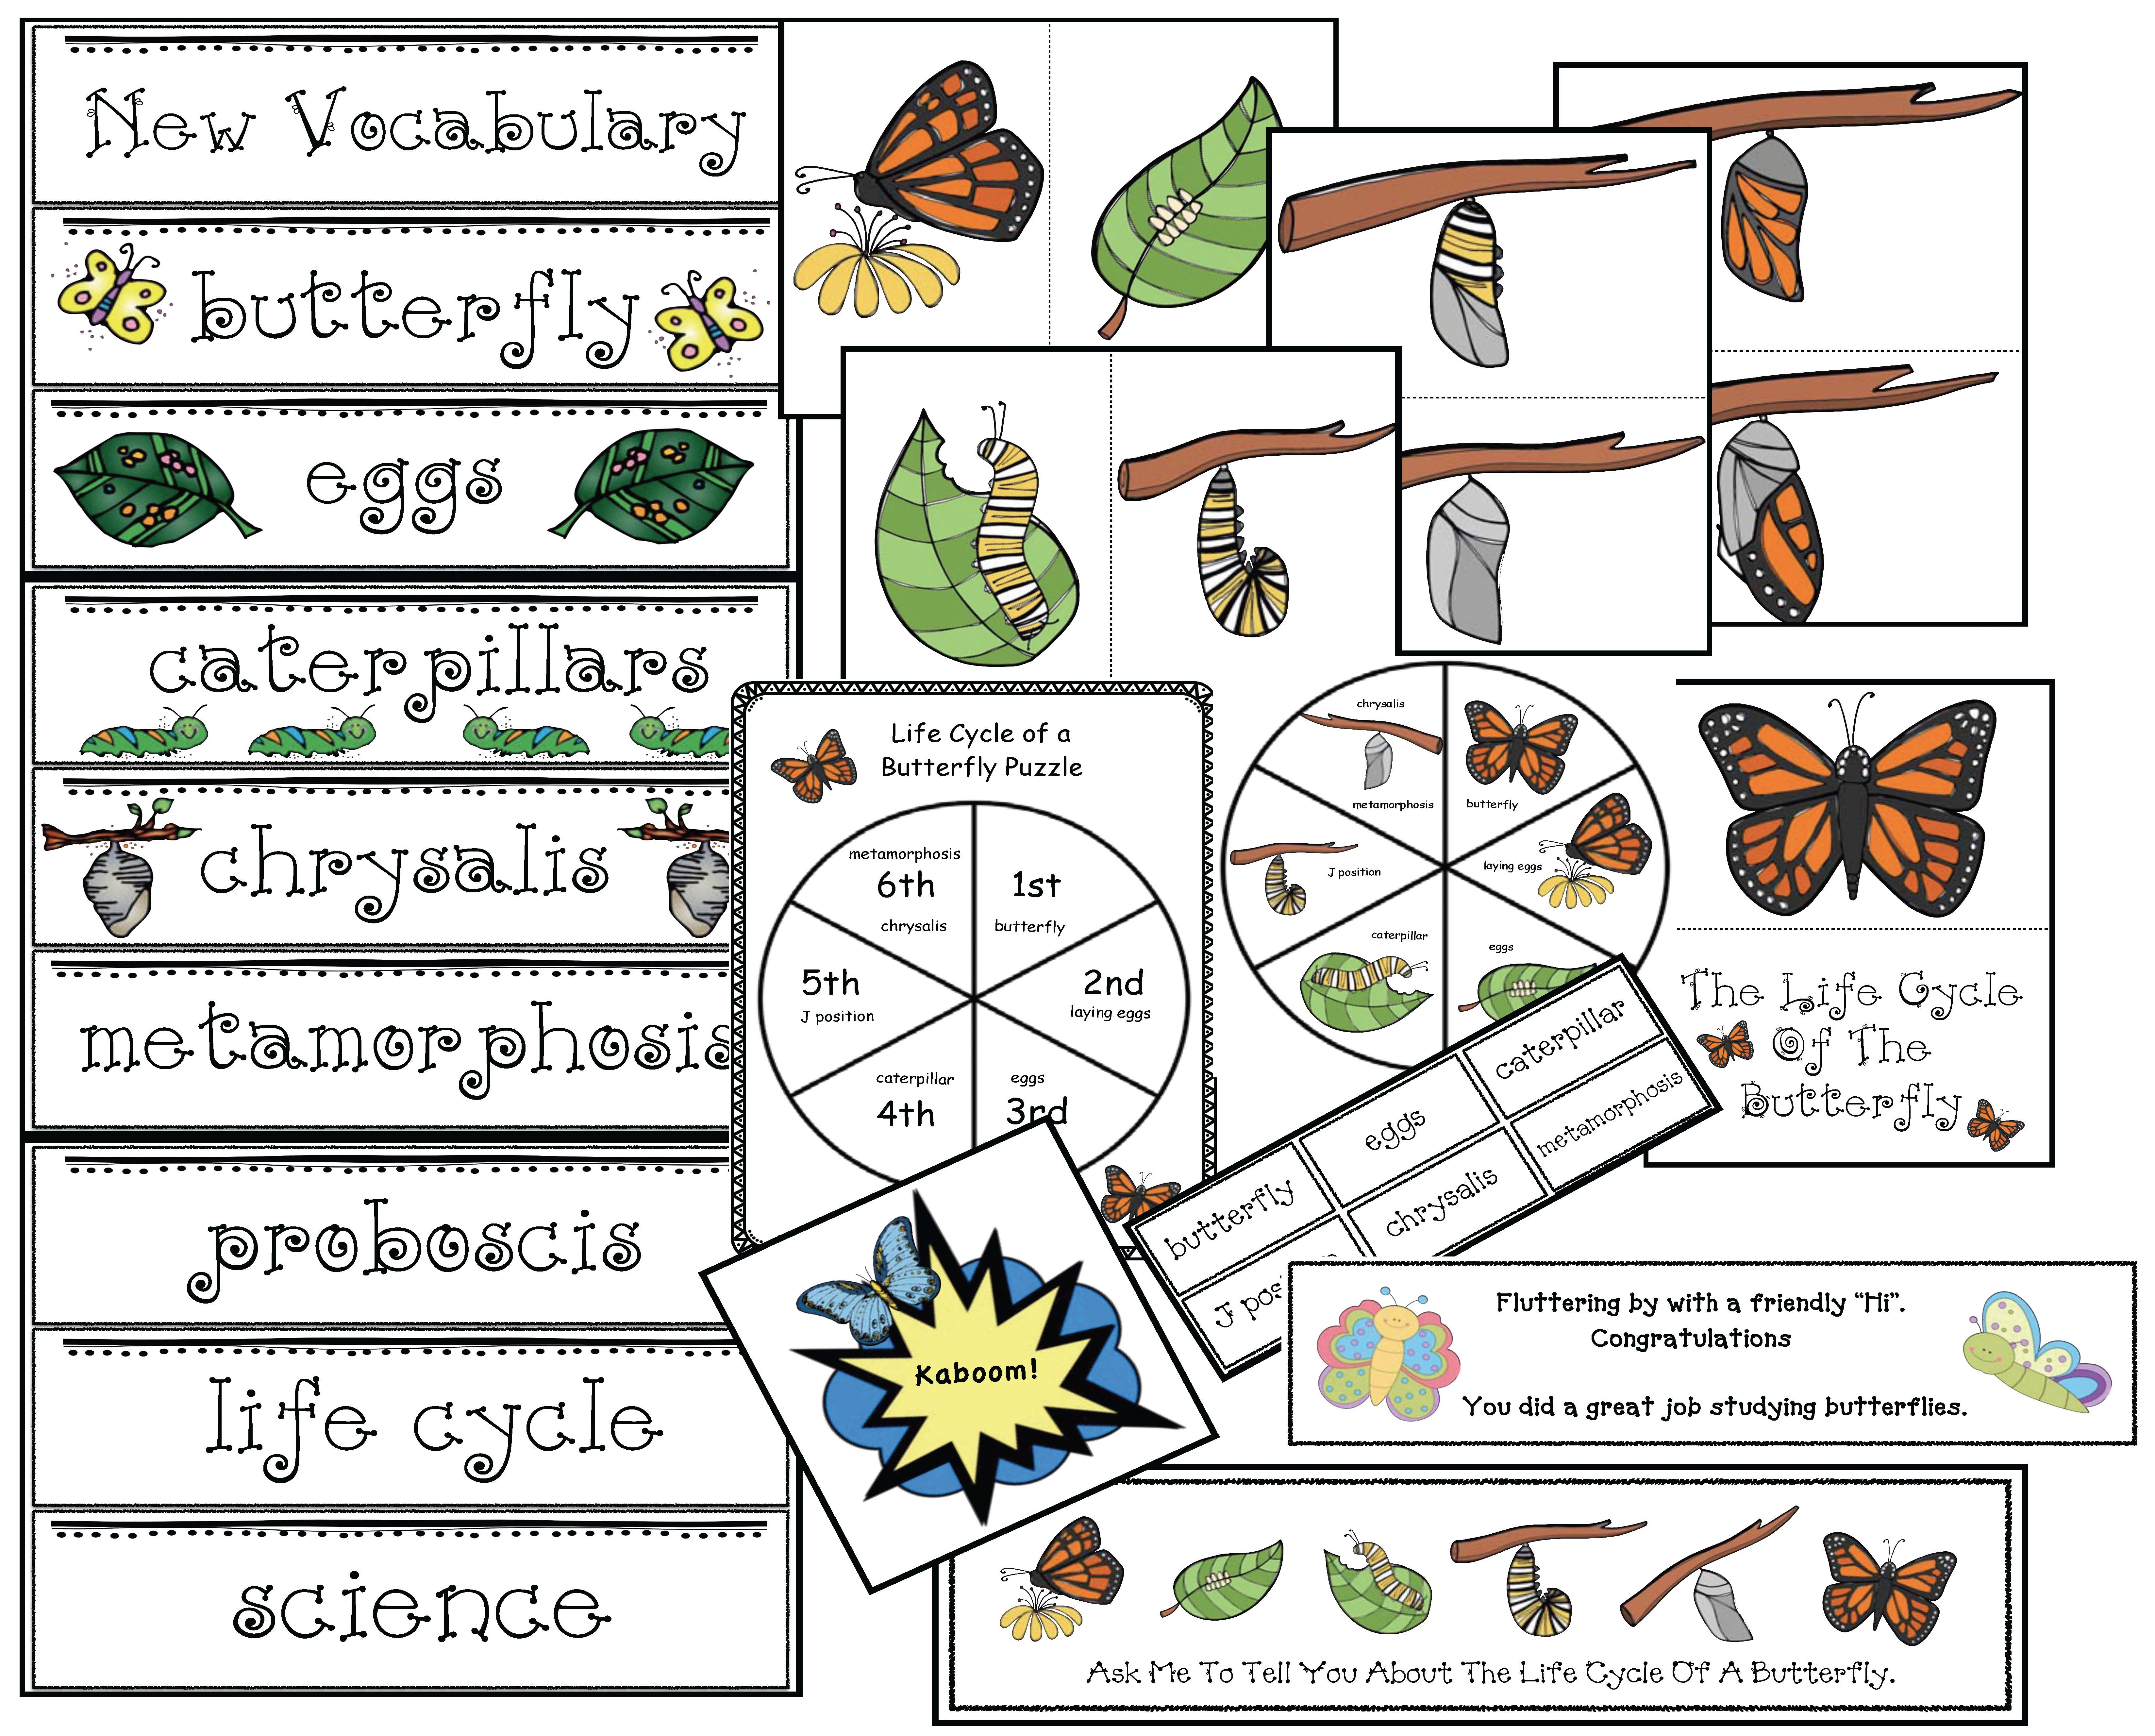 life cycle of a butterfly activities, life cycle of a butterfly crafts, the very hungry caterpillar activities, the very hungry caterpillar crafts